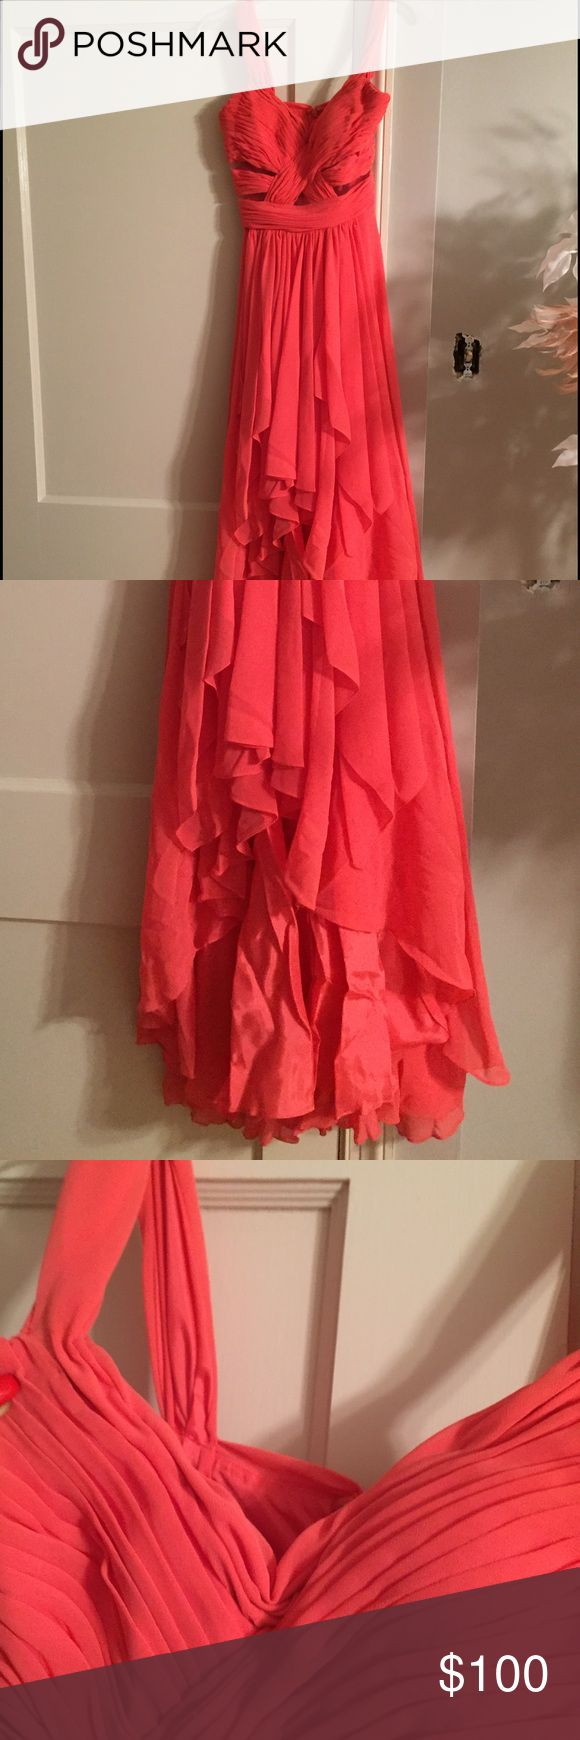 """Coral gown Cache coral high low gown. Size 2. Worn twice. Hemmed to my height (5'3""""). V neck altered to be less deep. Beautiful gown, great condition! Cache Dresses Maxi"""